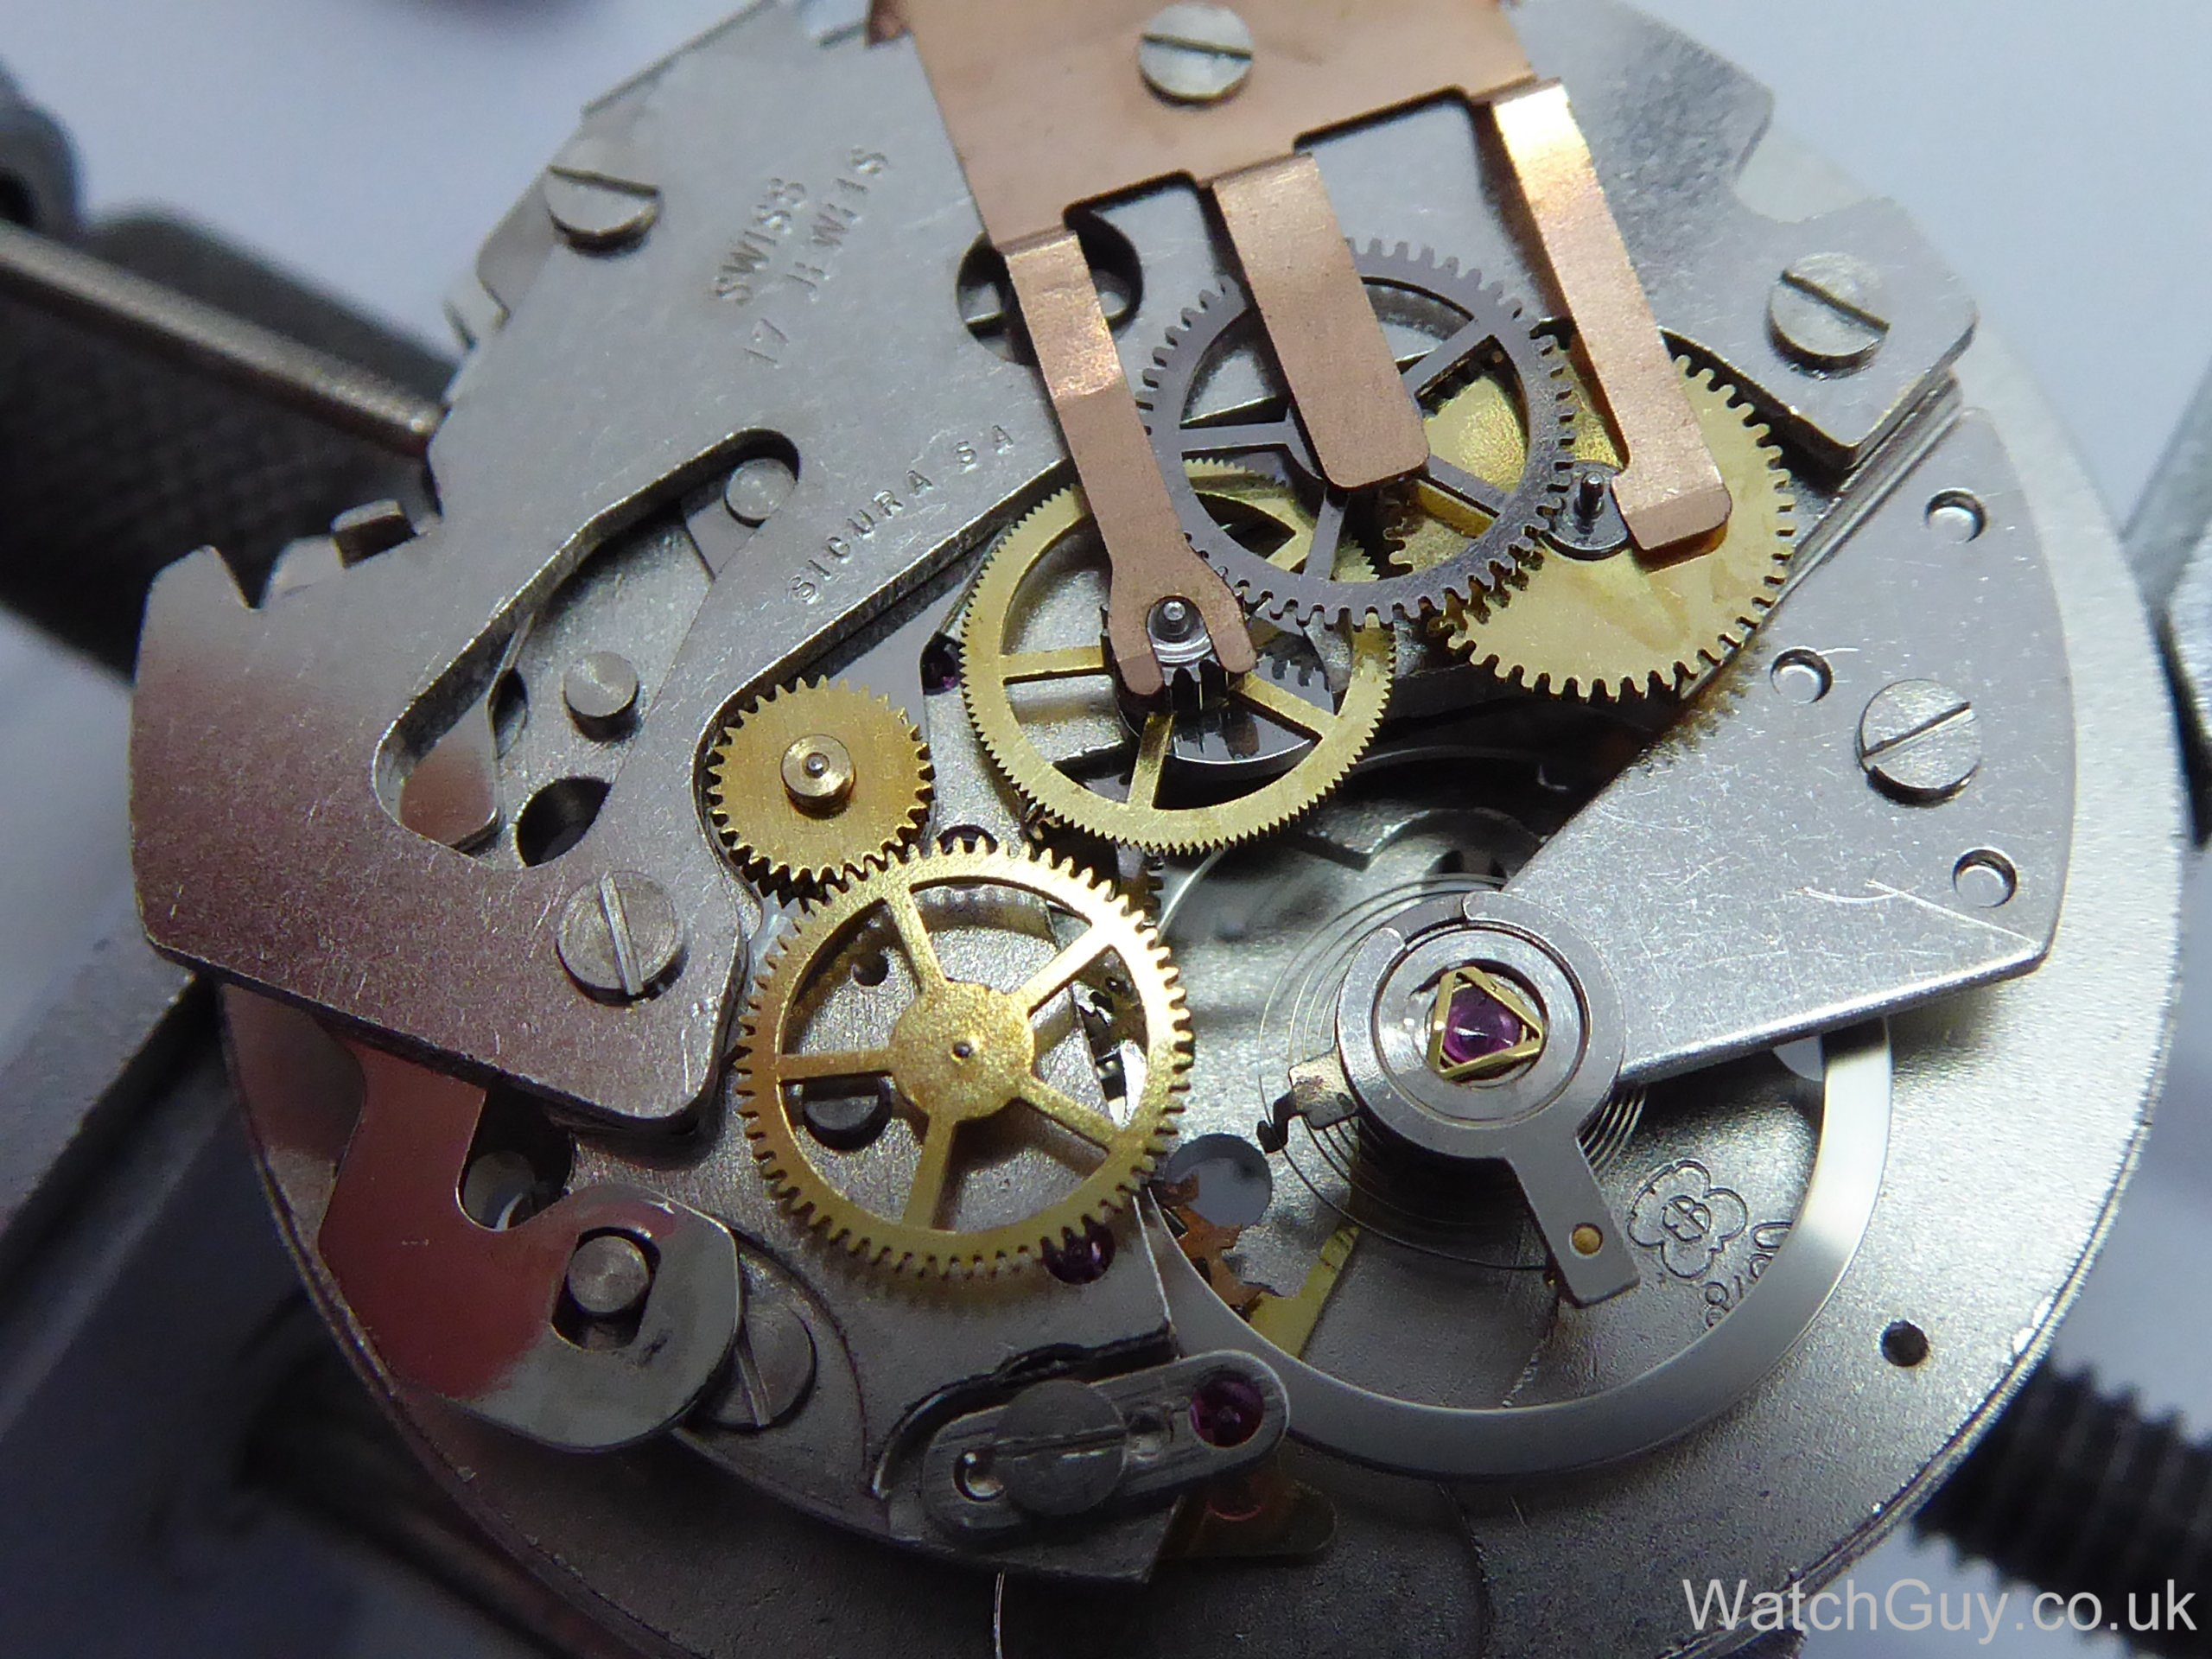 A Labour Of Love Sicura Chronograph Eb 8420 74 Watch Guy Parts Diagram Related Images The Two Are Pressed Into New Plate And Assembly Can Begin